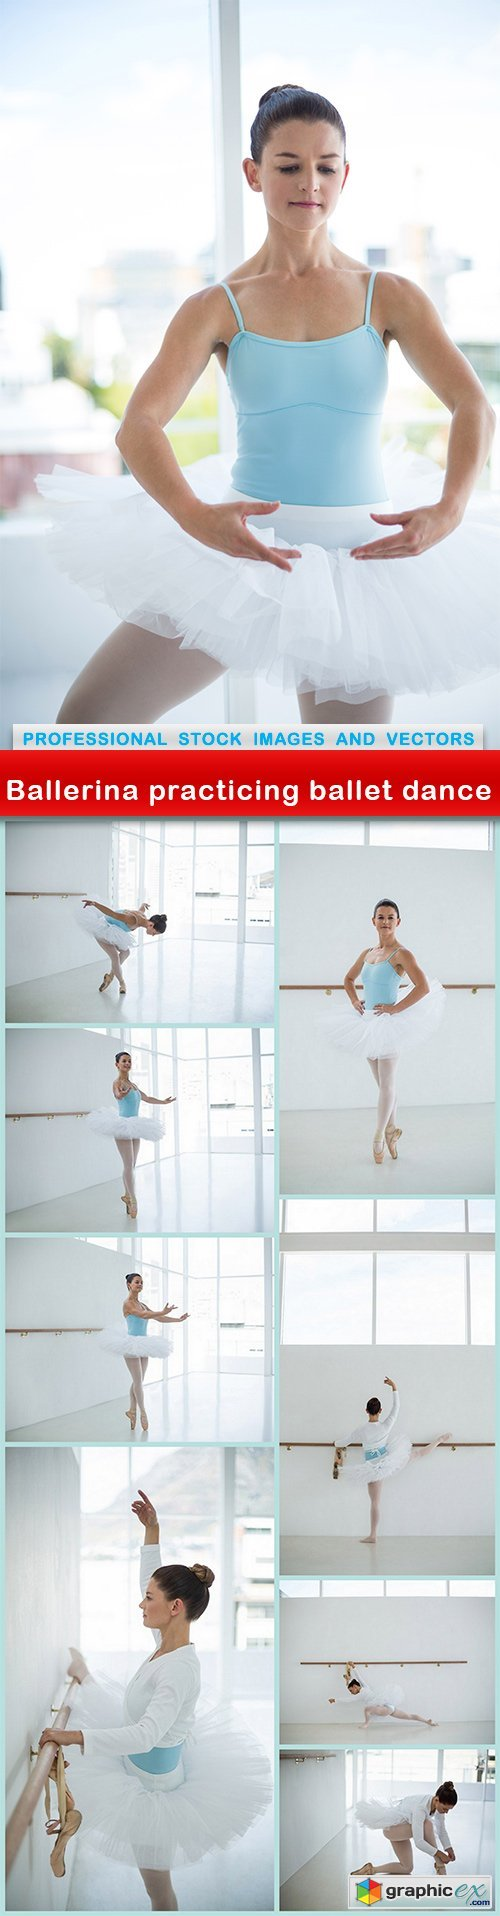 Ballerina practicing ballet dance - 9 UHQ JPEG